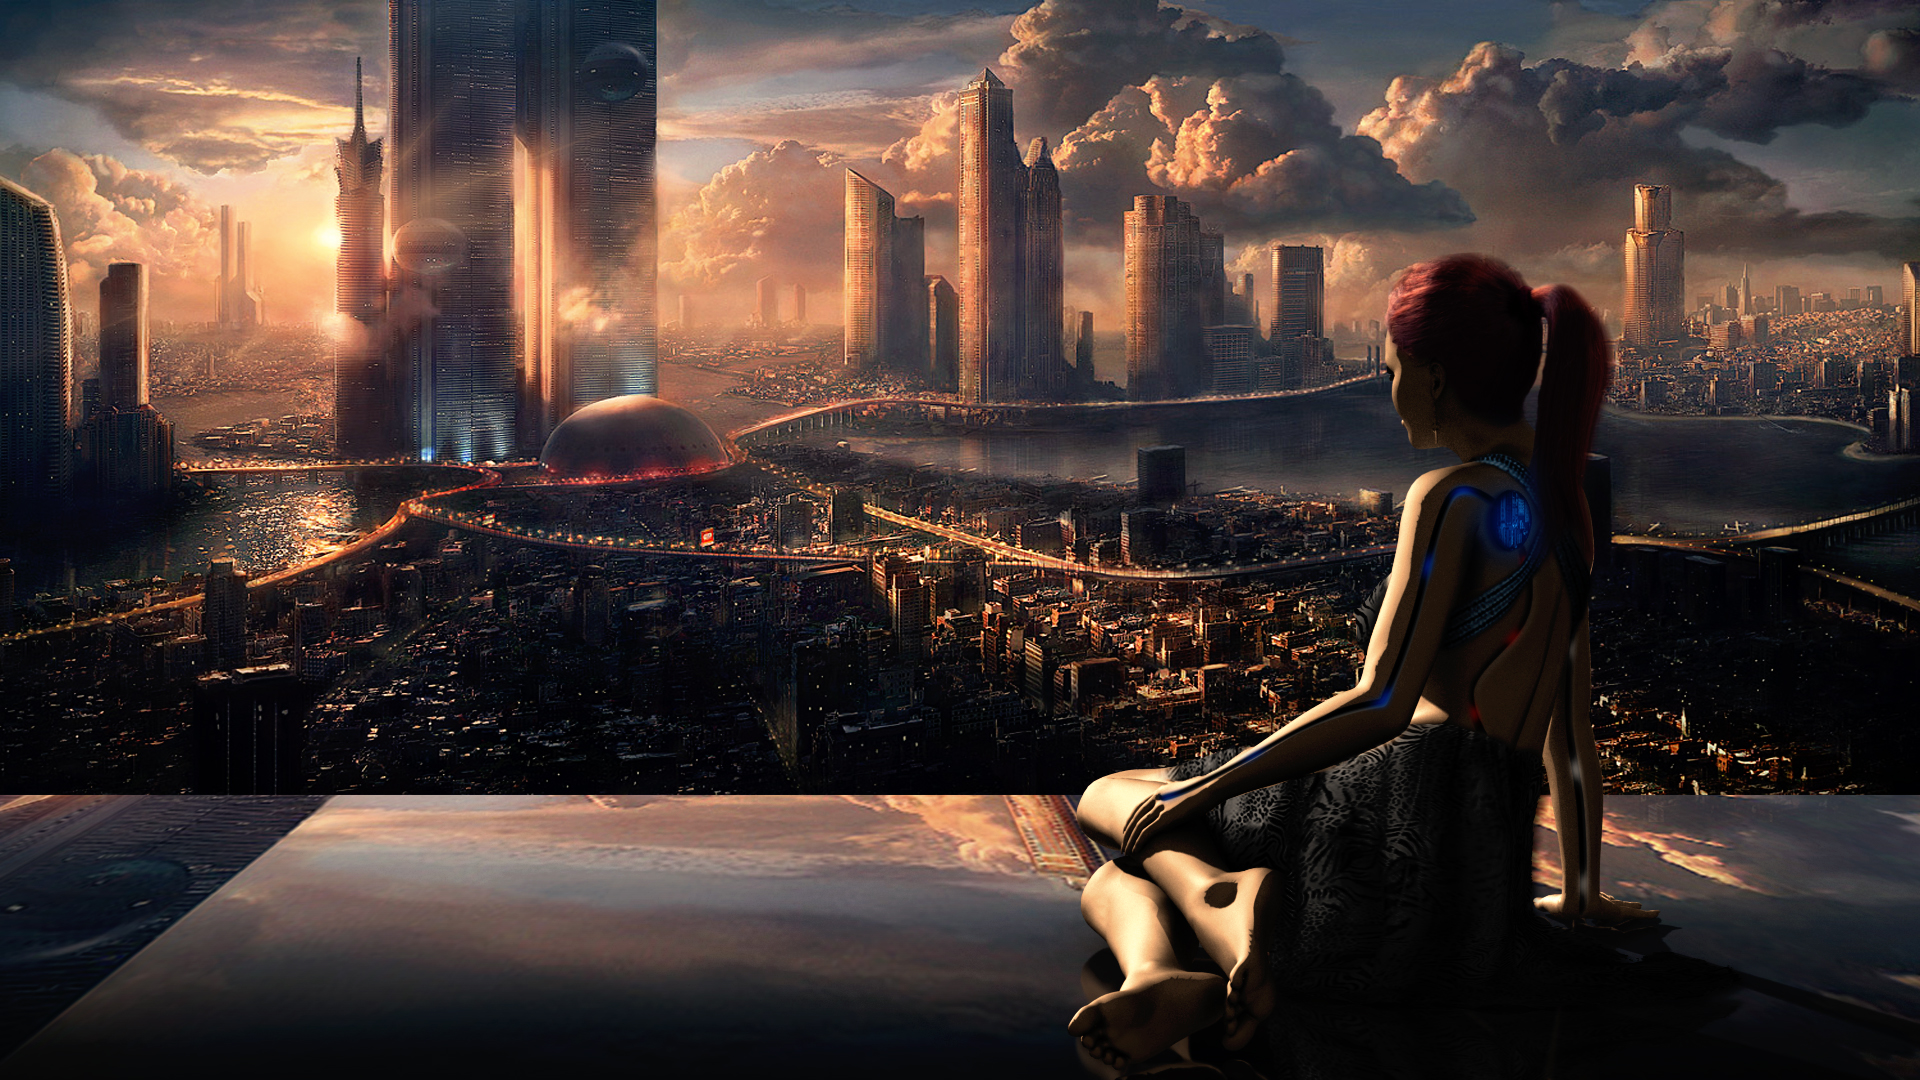 Futuristic City Wallpaper HD Desktop Image 1920x1080